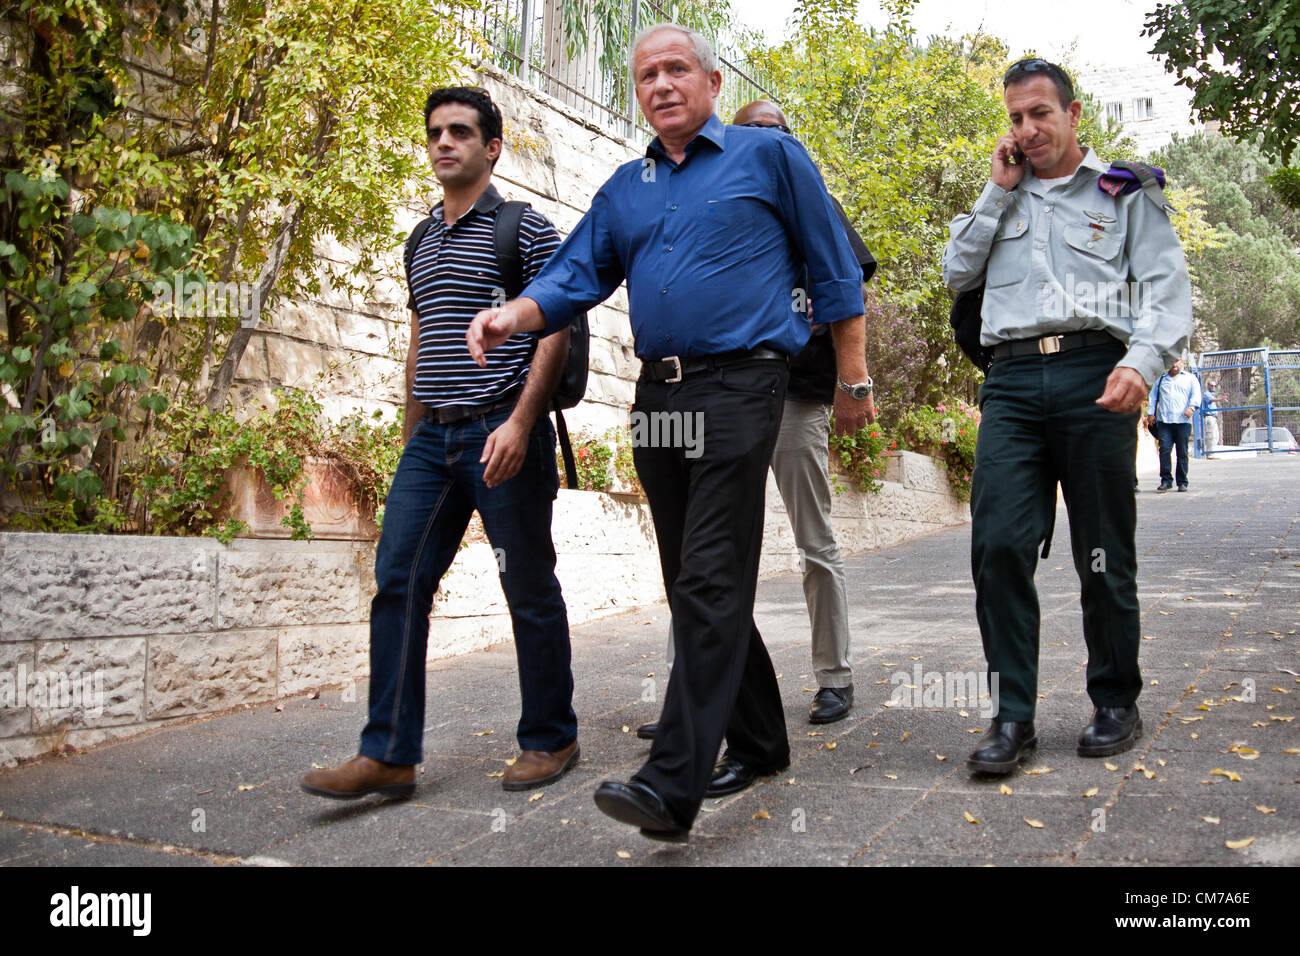 Avi Dicther, Minister of Home Front Defense (blue shirt), arrives at the Frenkel School to monitor emergency evacuation - Stock Image